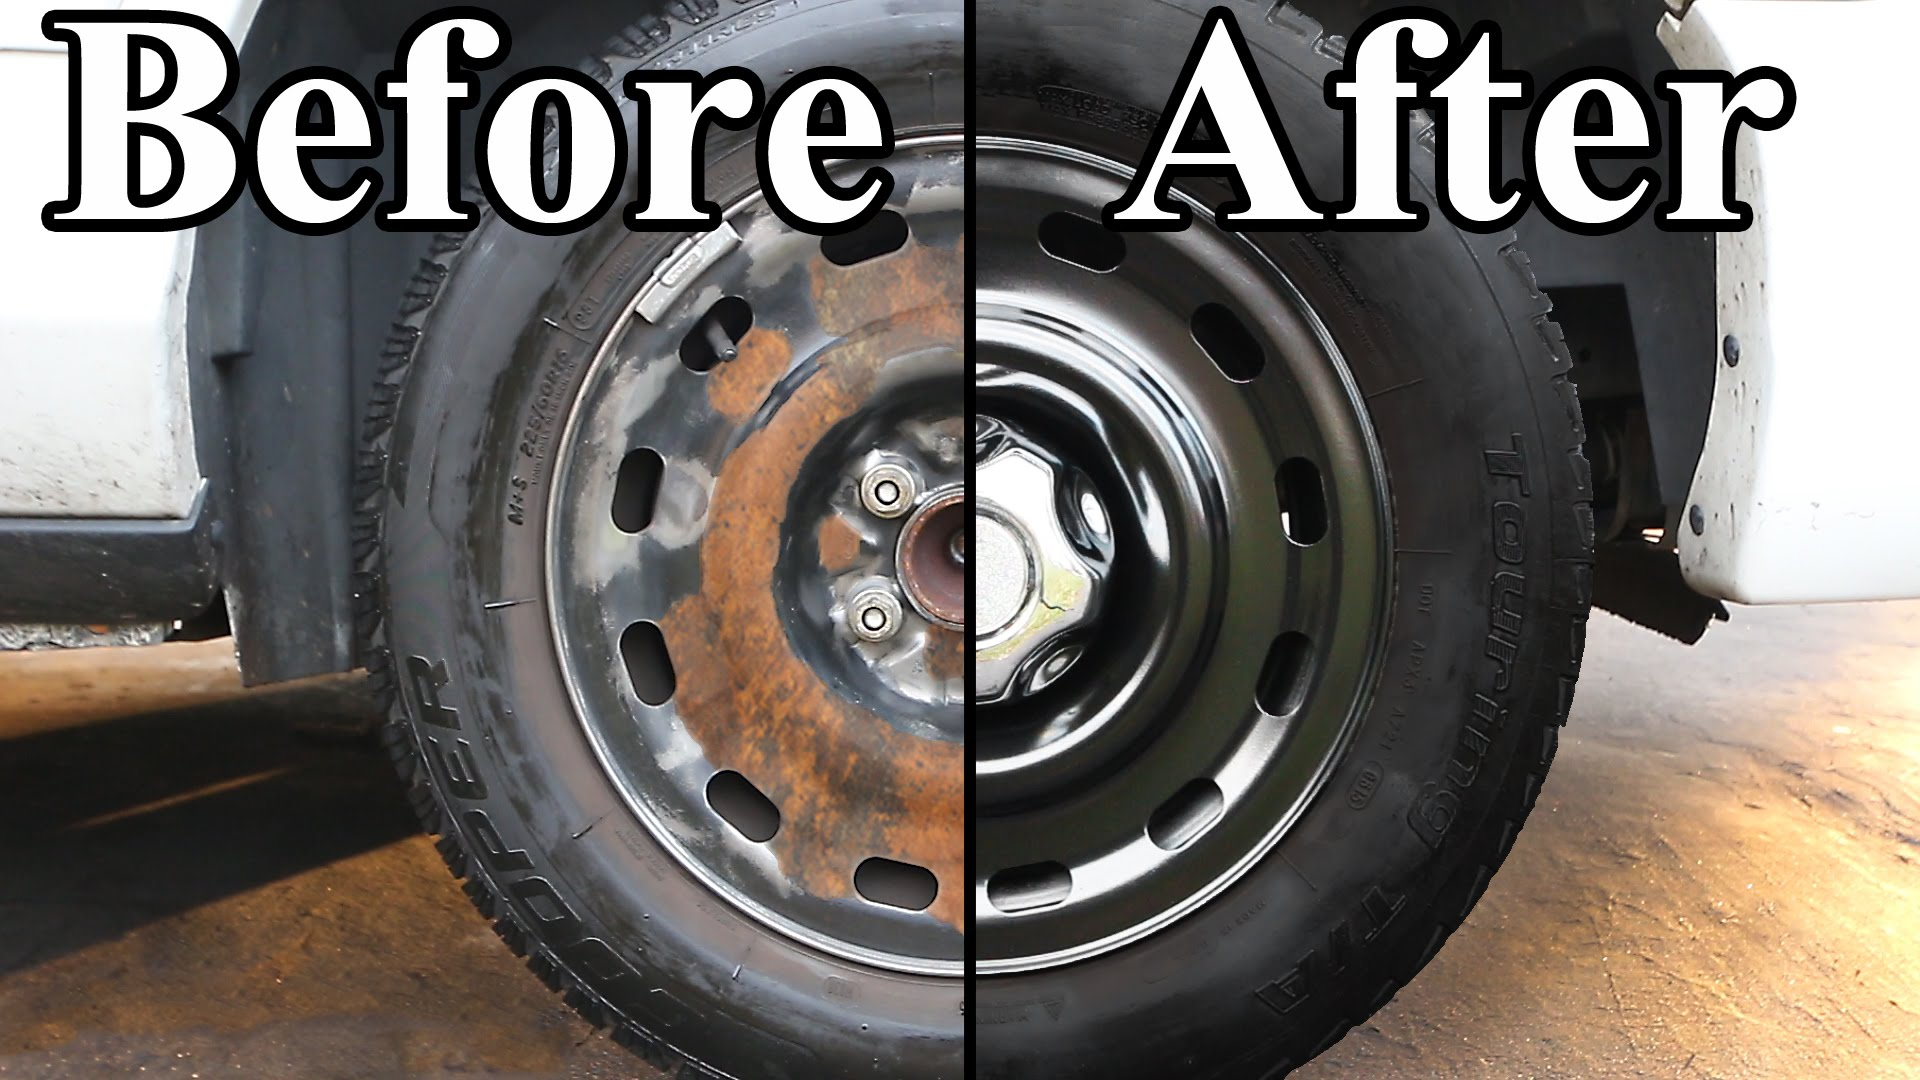 This Simple Trick Will Make Your Car Look 5 Years Younger